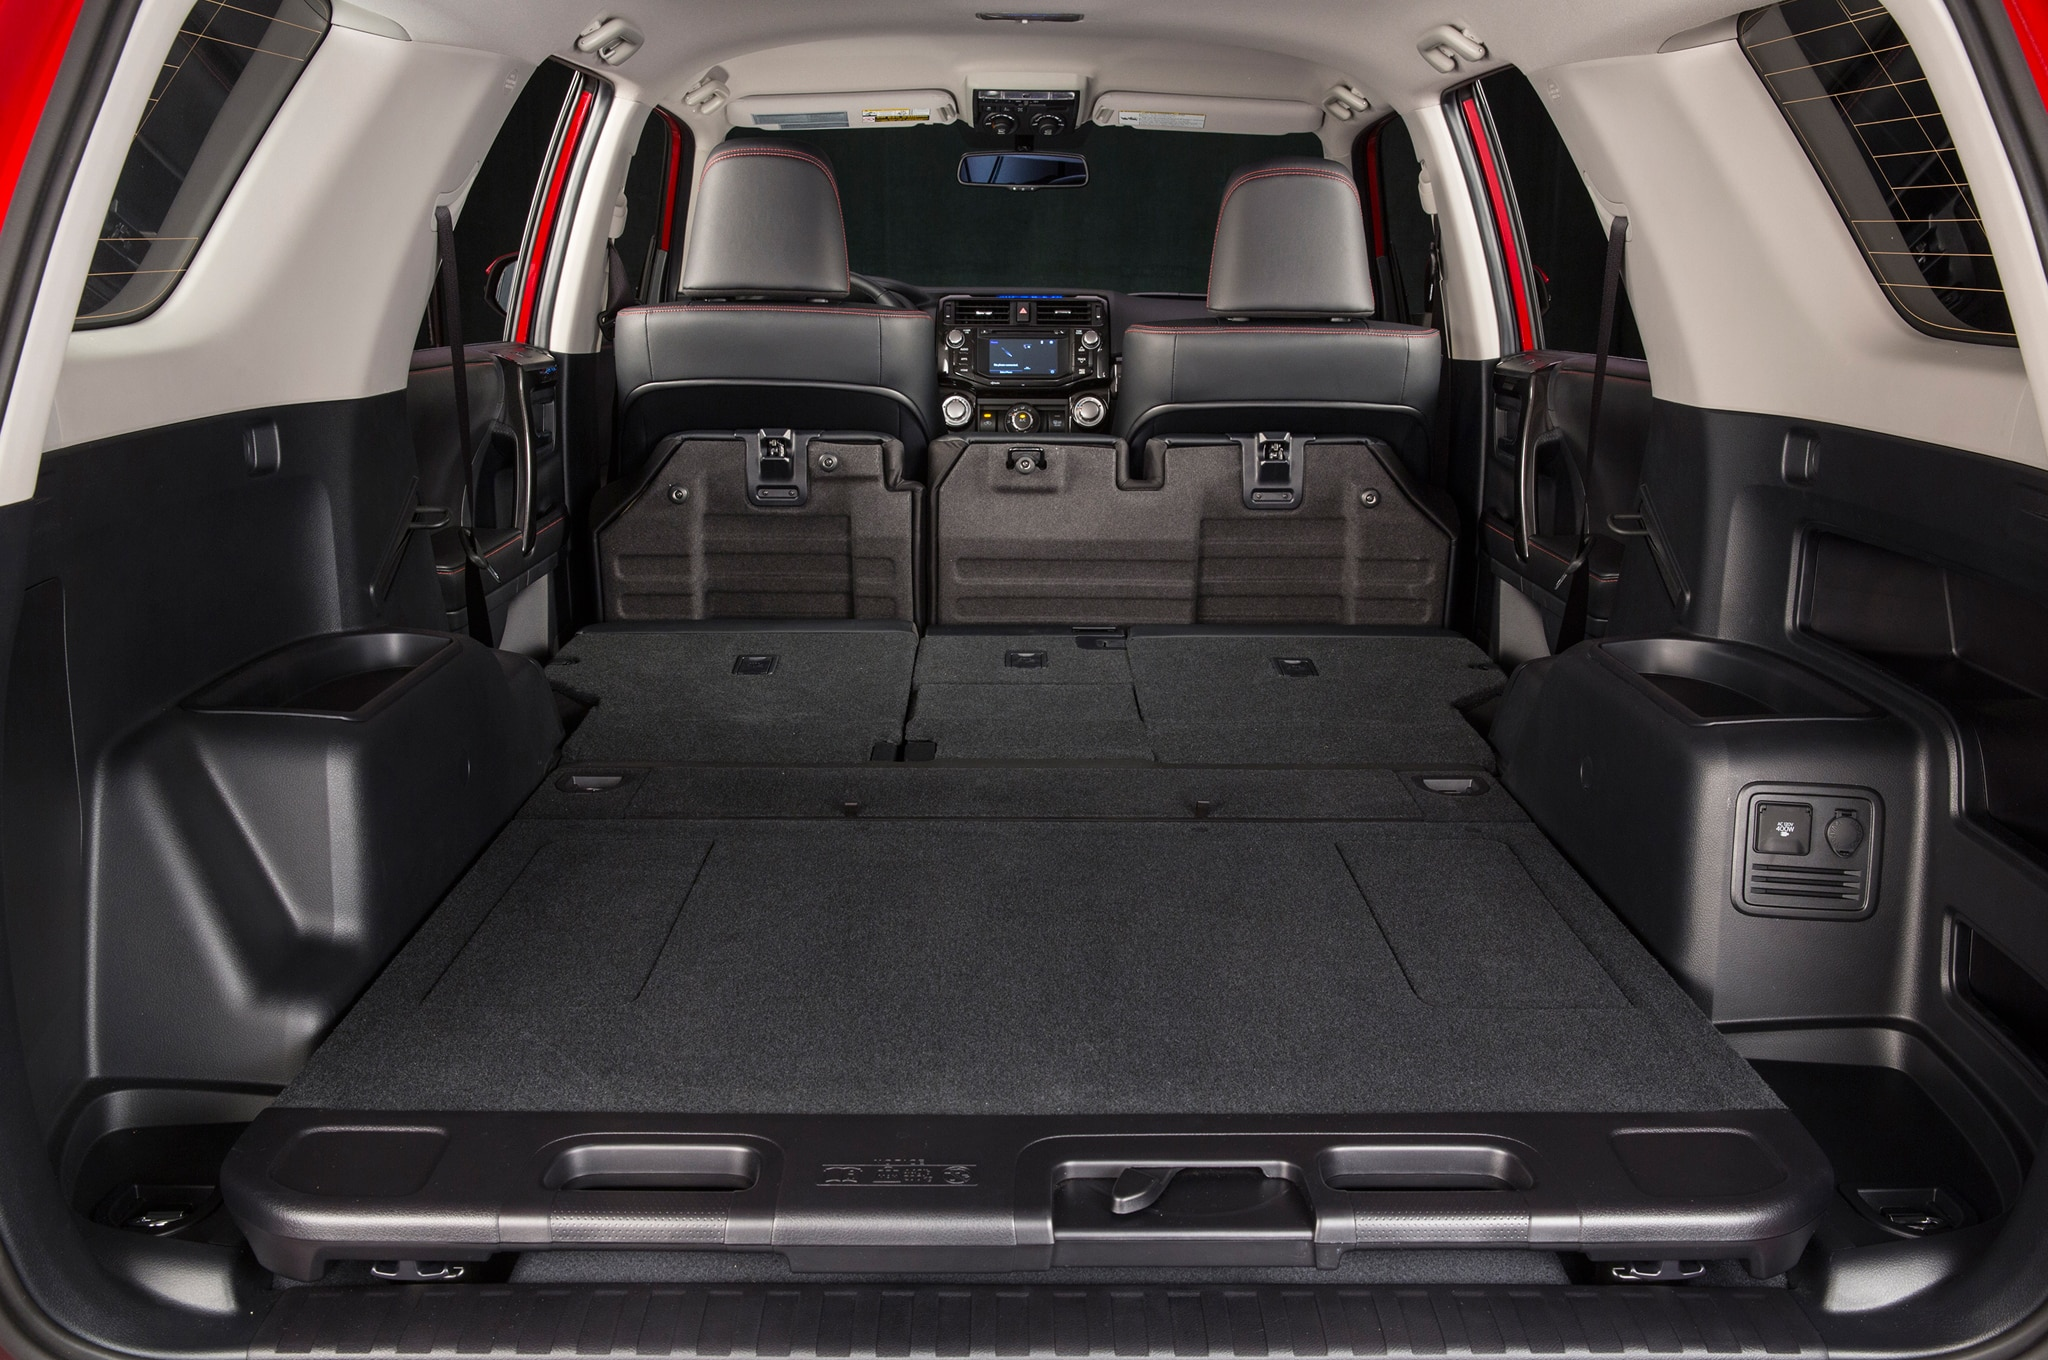 2014 Toyota 4runner Trail rear interior cargo space